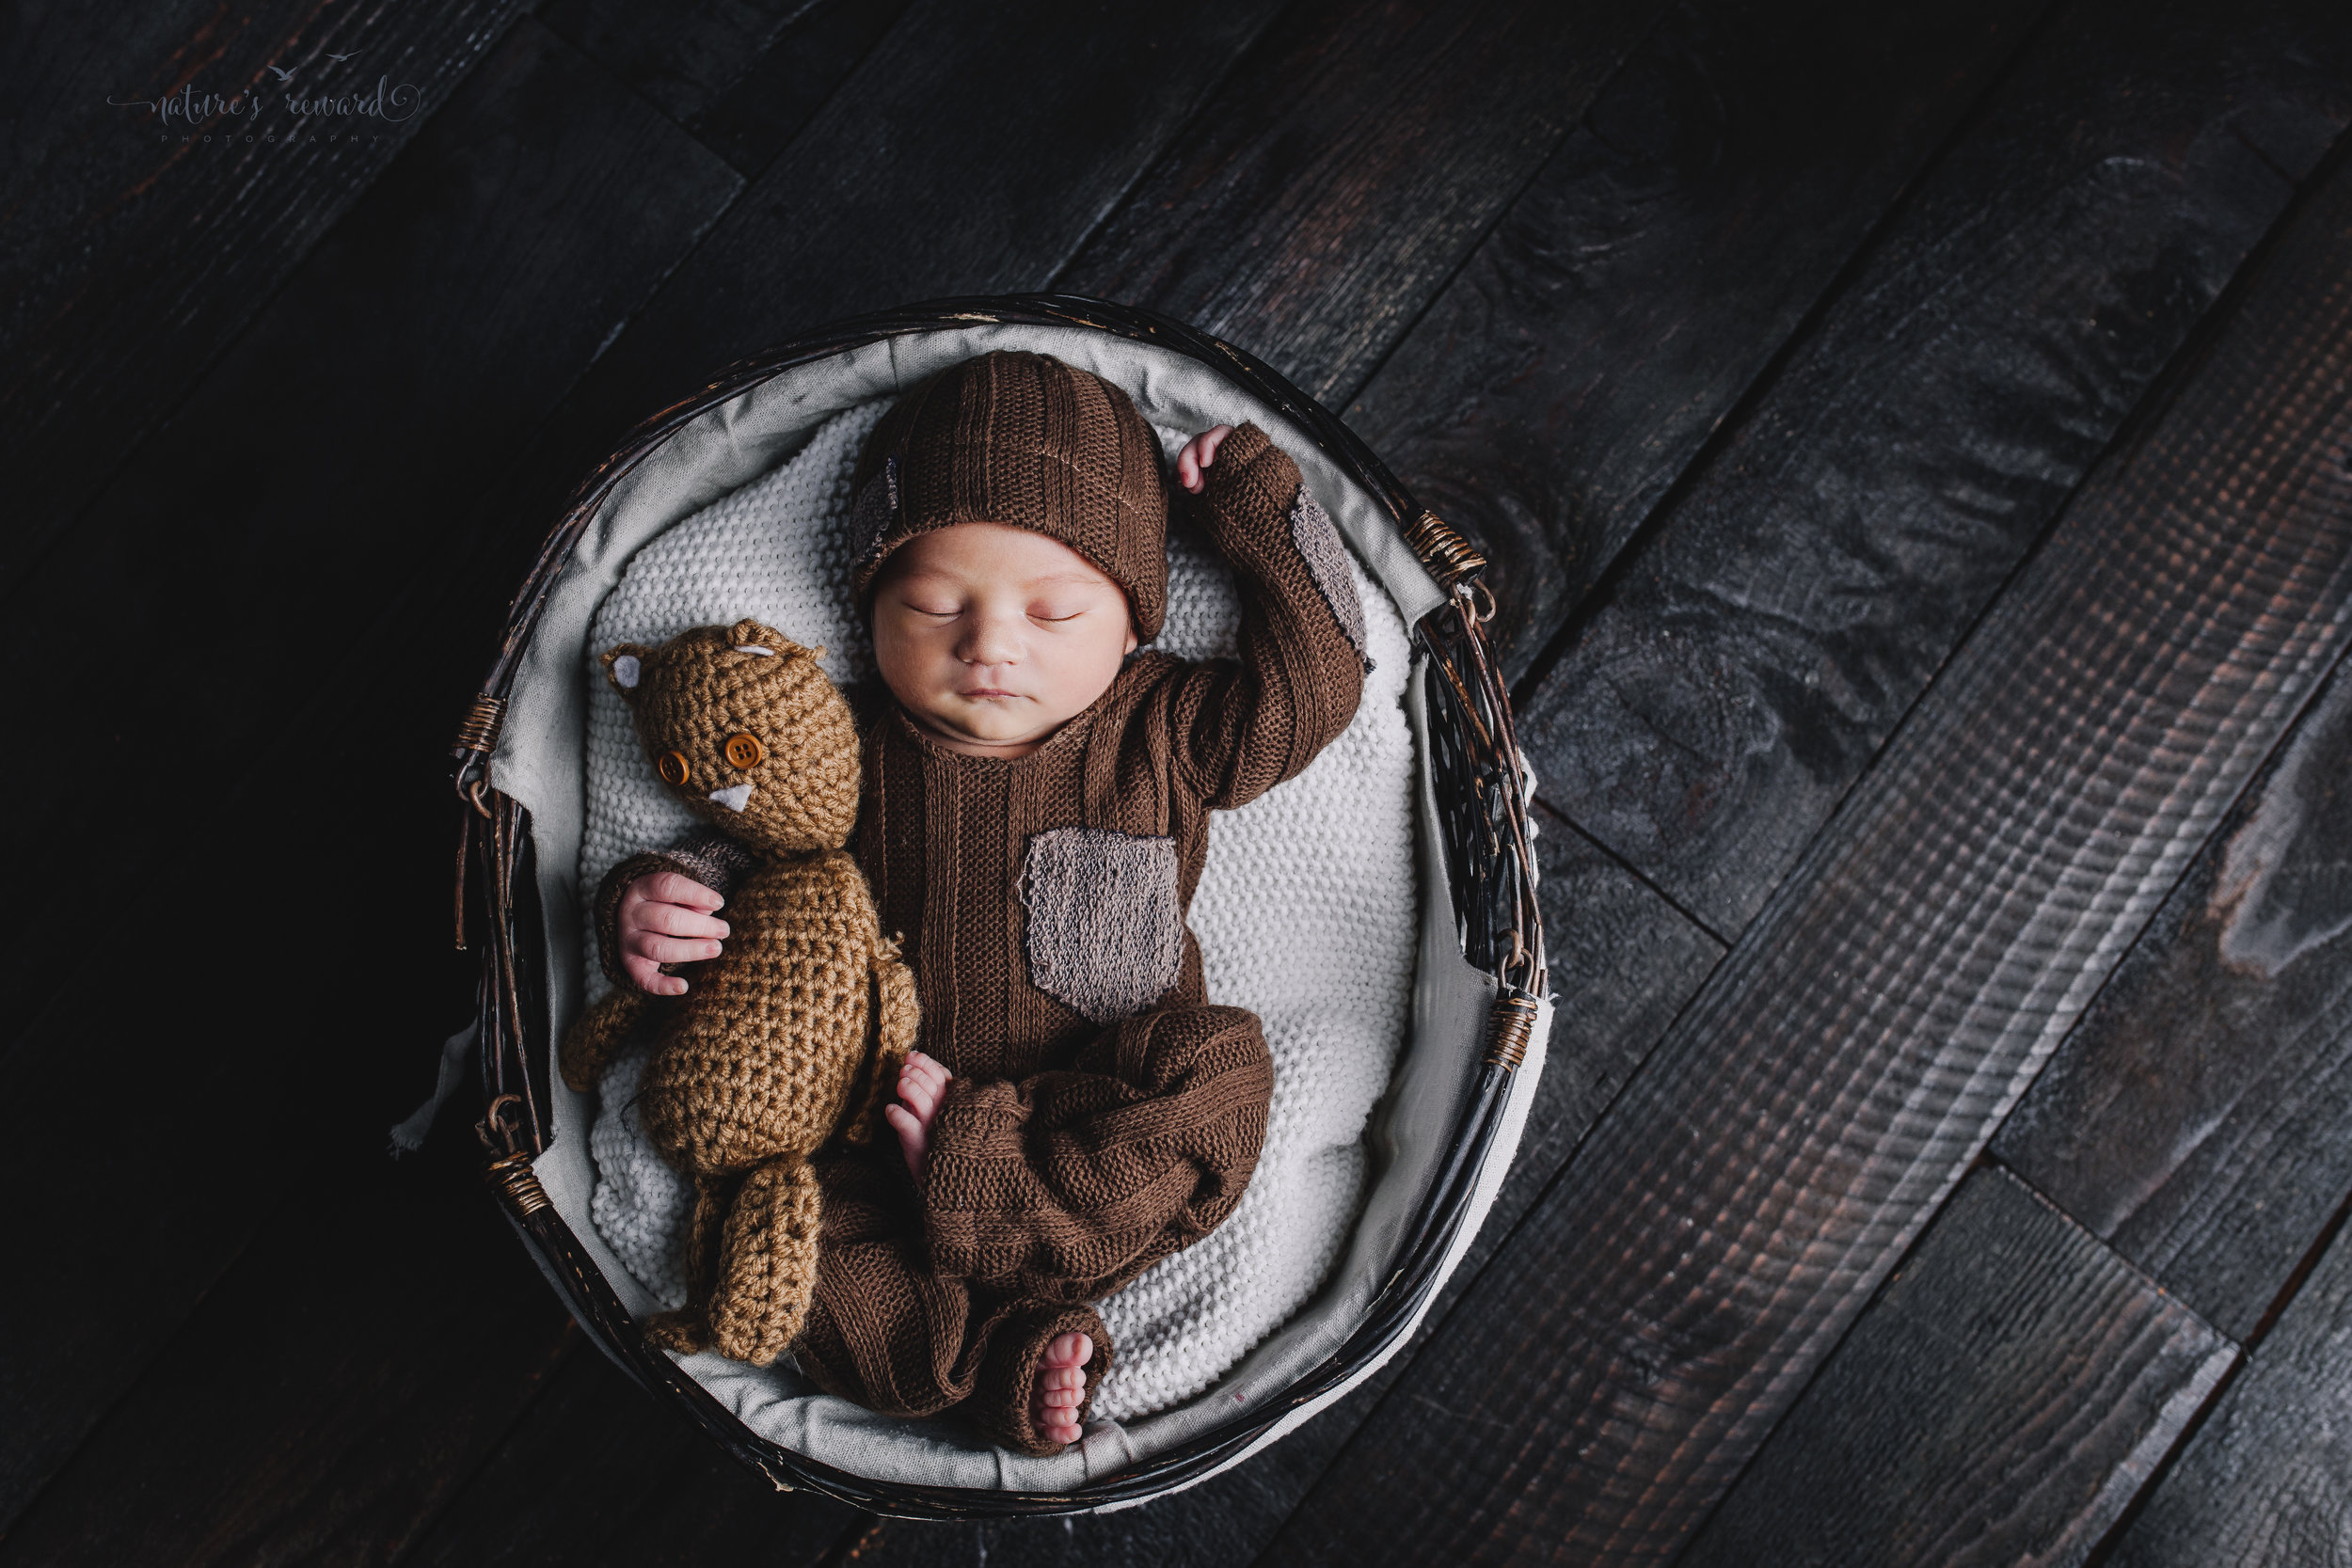 Newborn baby boy portrait wearing a brown outfit and matching cap holding a teddy by Nature's Reward Photography